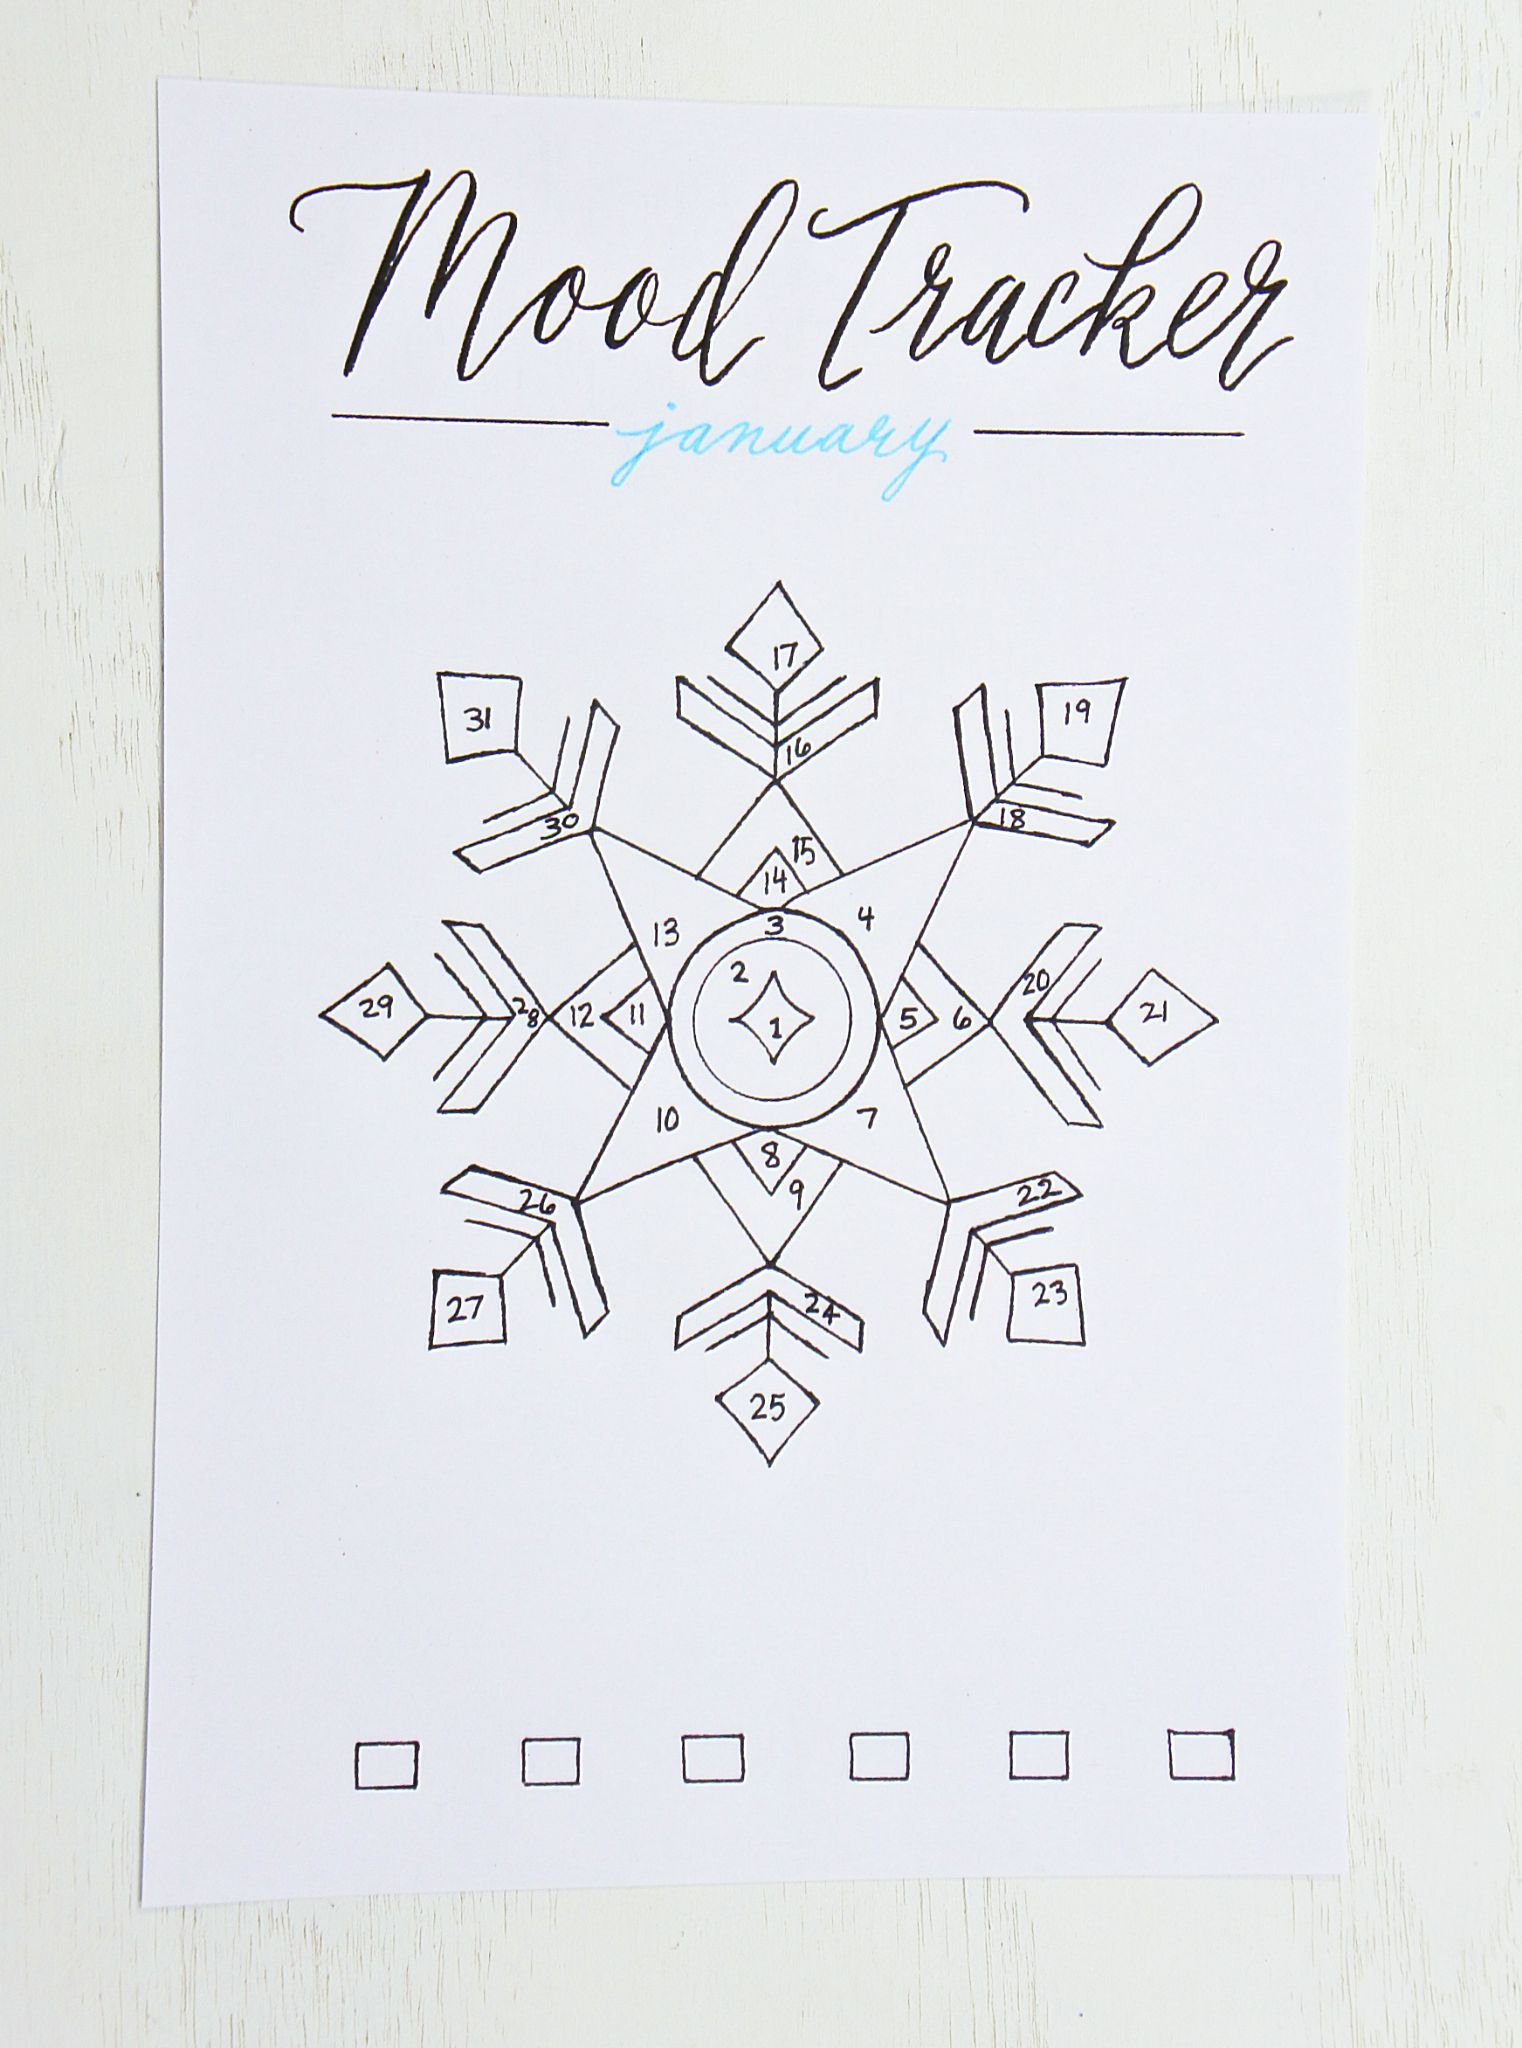 image regarding Mood Tracker Bullet Journal Printable referred to as Bullet Magazine Set up for 2019 Planner December bullet